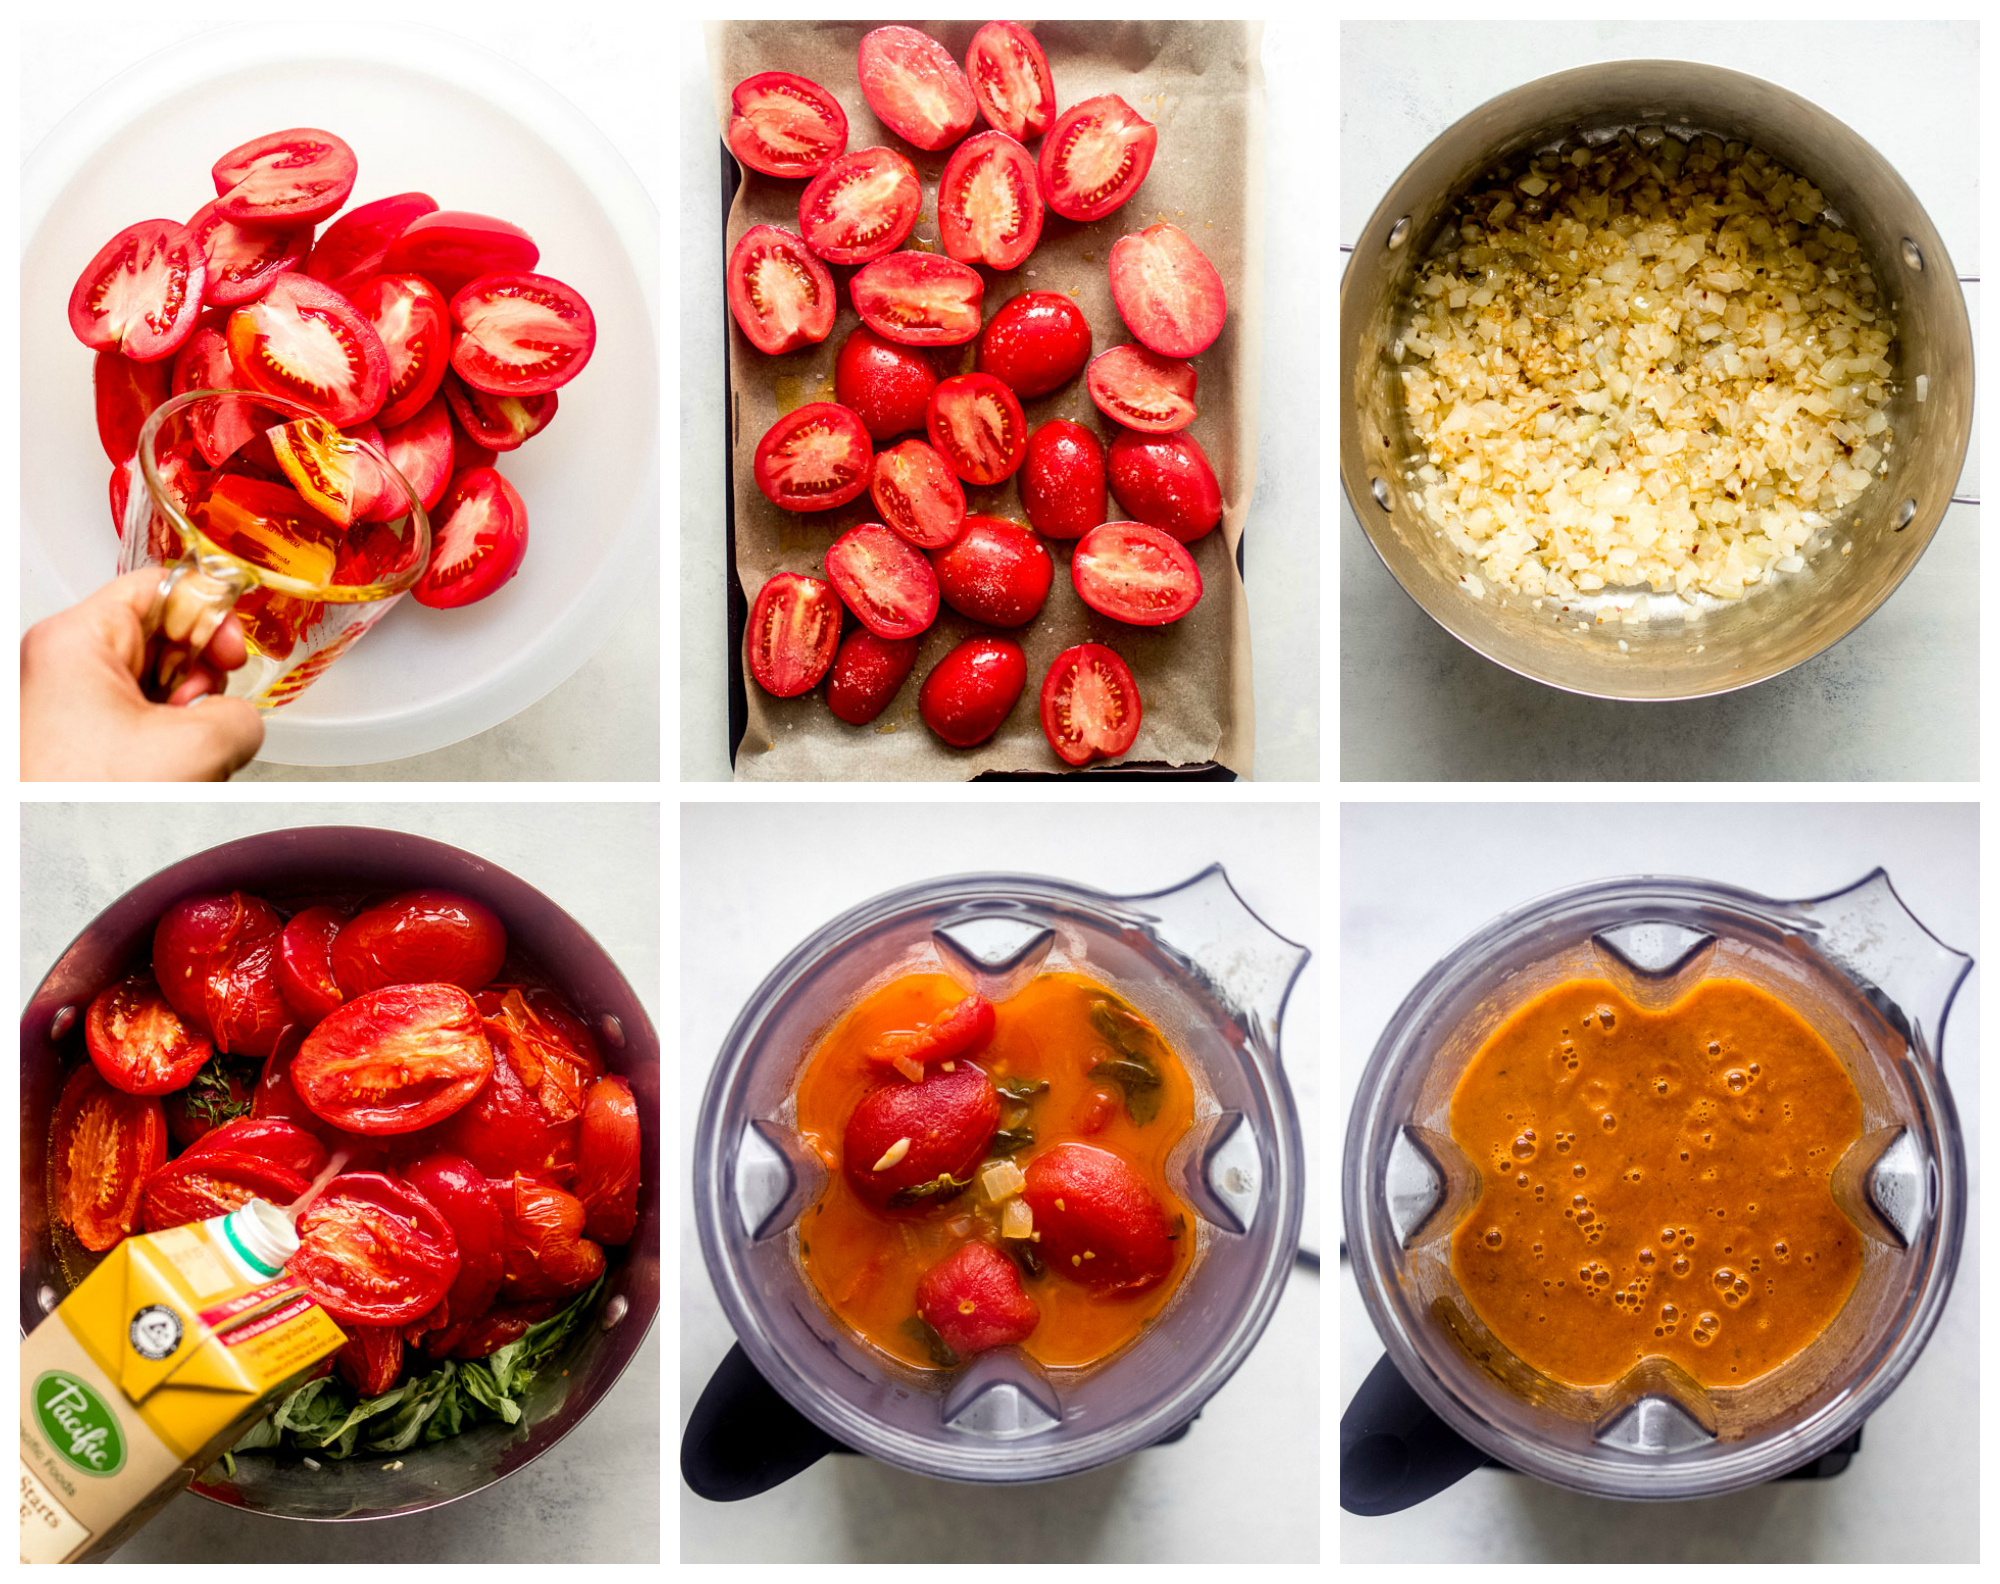 Step by step instruction on how to make tomato soup.